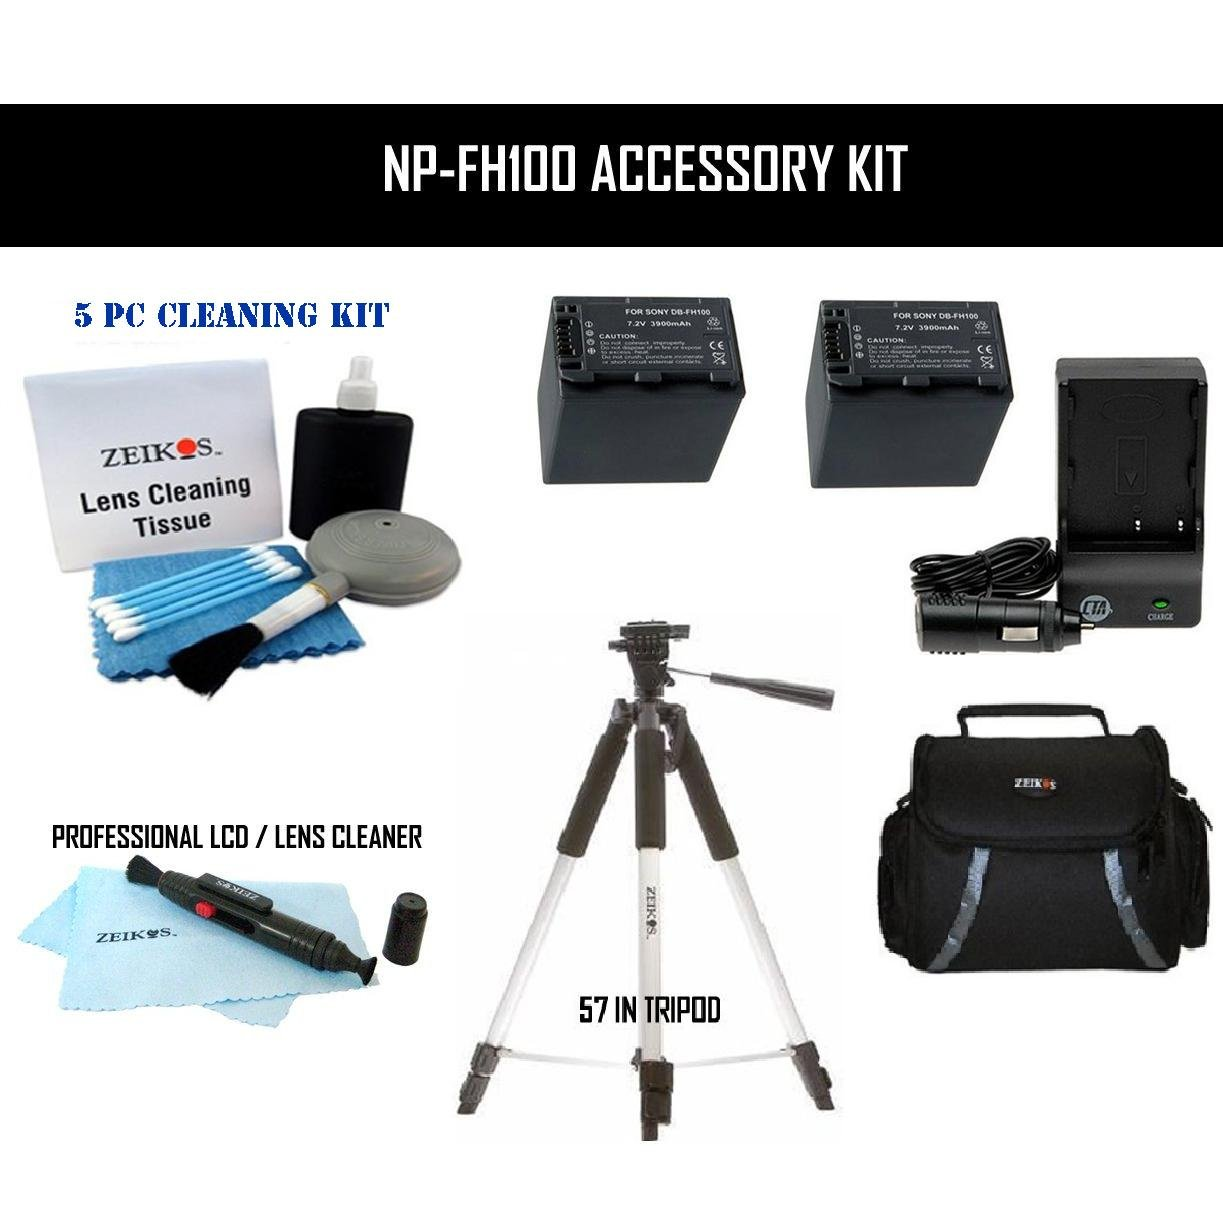 Advanced NP-FH100 Accessory Kit for Sony Camcorders/HandyCams DCR-DVD103, DCR-DVD105, DCR-DVD-108, DCR-DVD203, DCR-HC20, DCR-HC21 with Tripod, Rapid Charger, 2x Lithium-Ion Replacement Batteries, Cleaning Kit and Deluxe Carrying Case